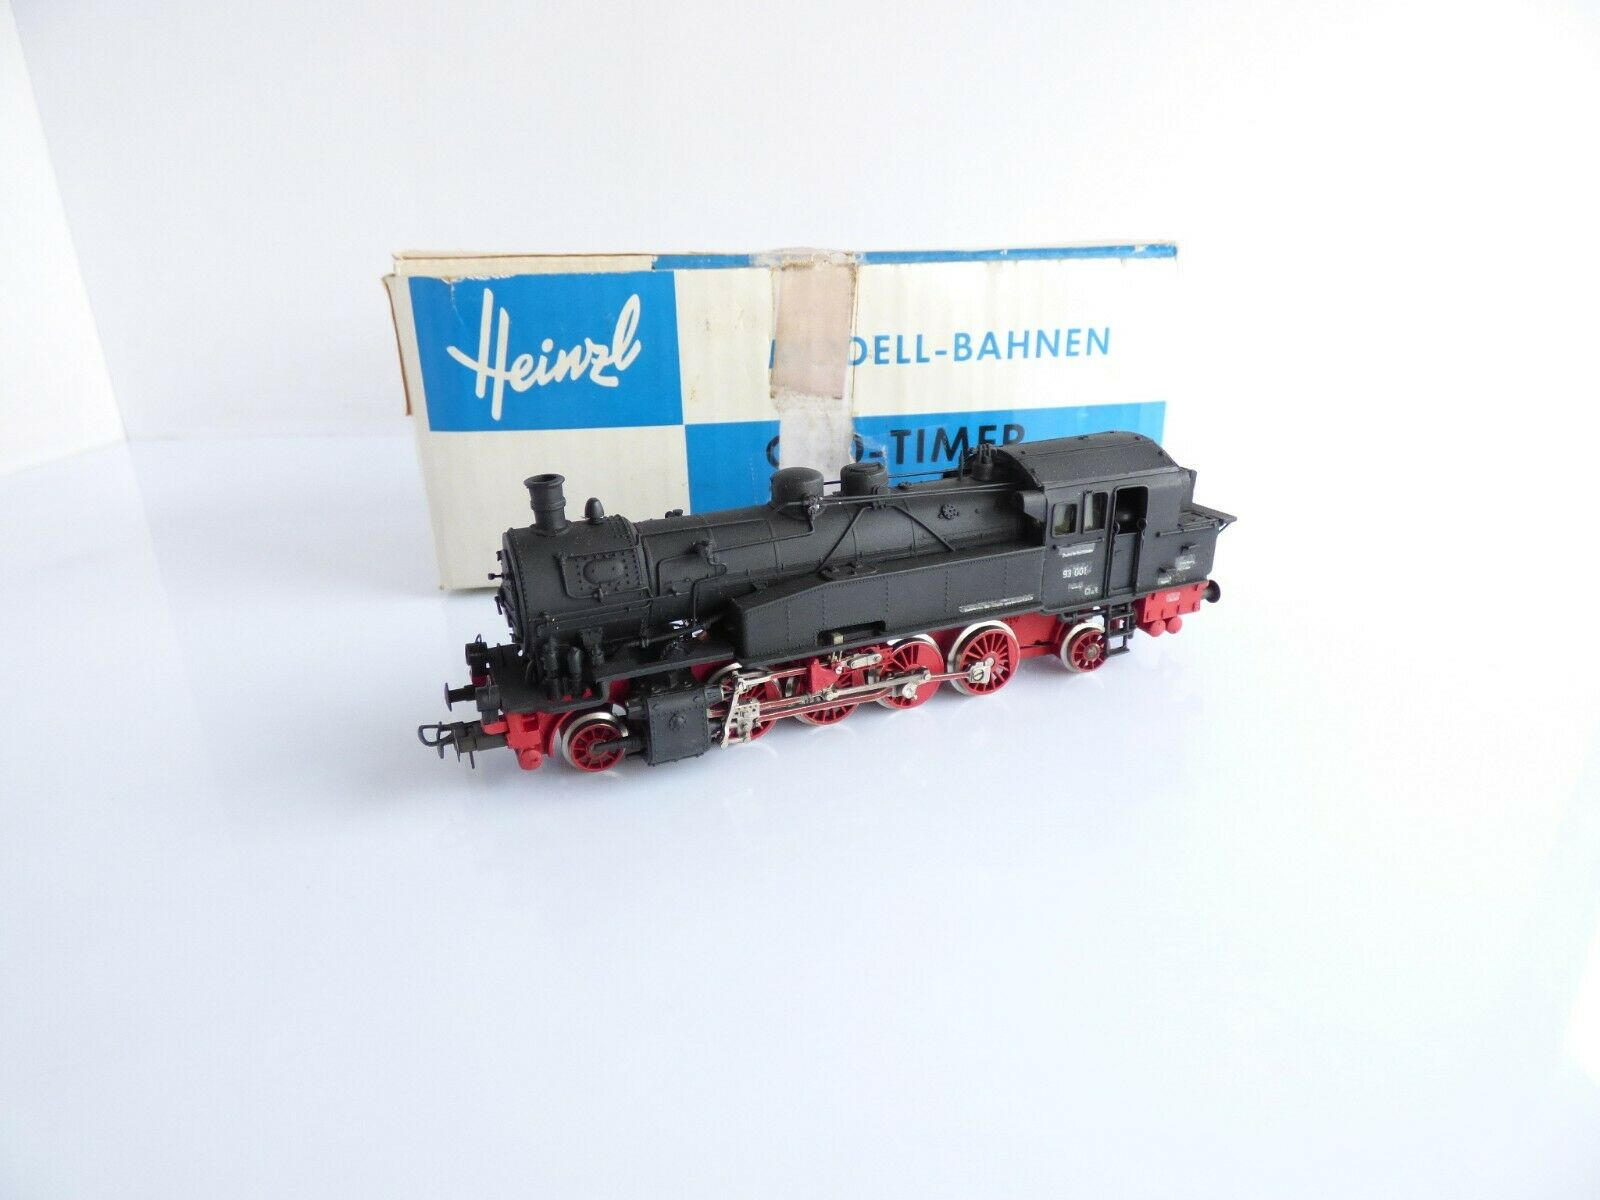 Heinzl merker and fisher steam locomotive has br 93 001 dr